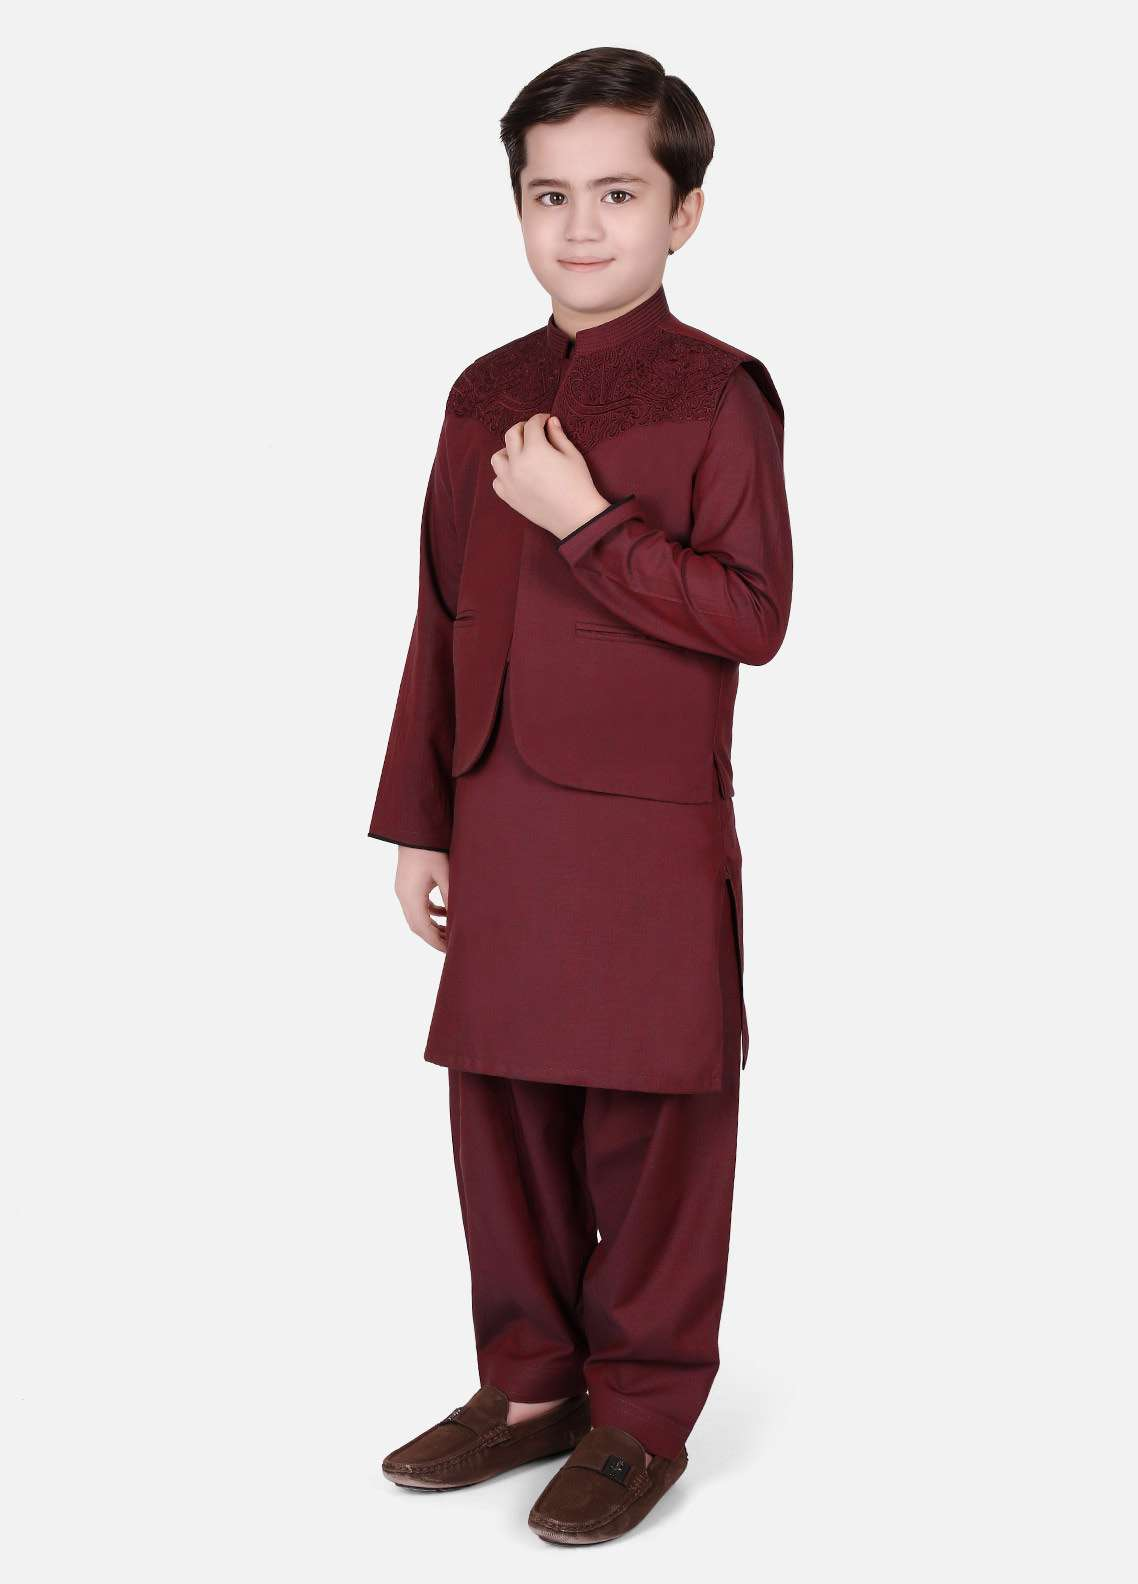 Edenrobe Cotton Embroidered Boys Waistcoat Suits - Maroon EDW18B 002